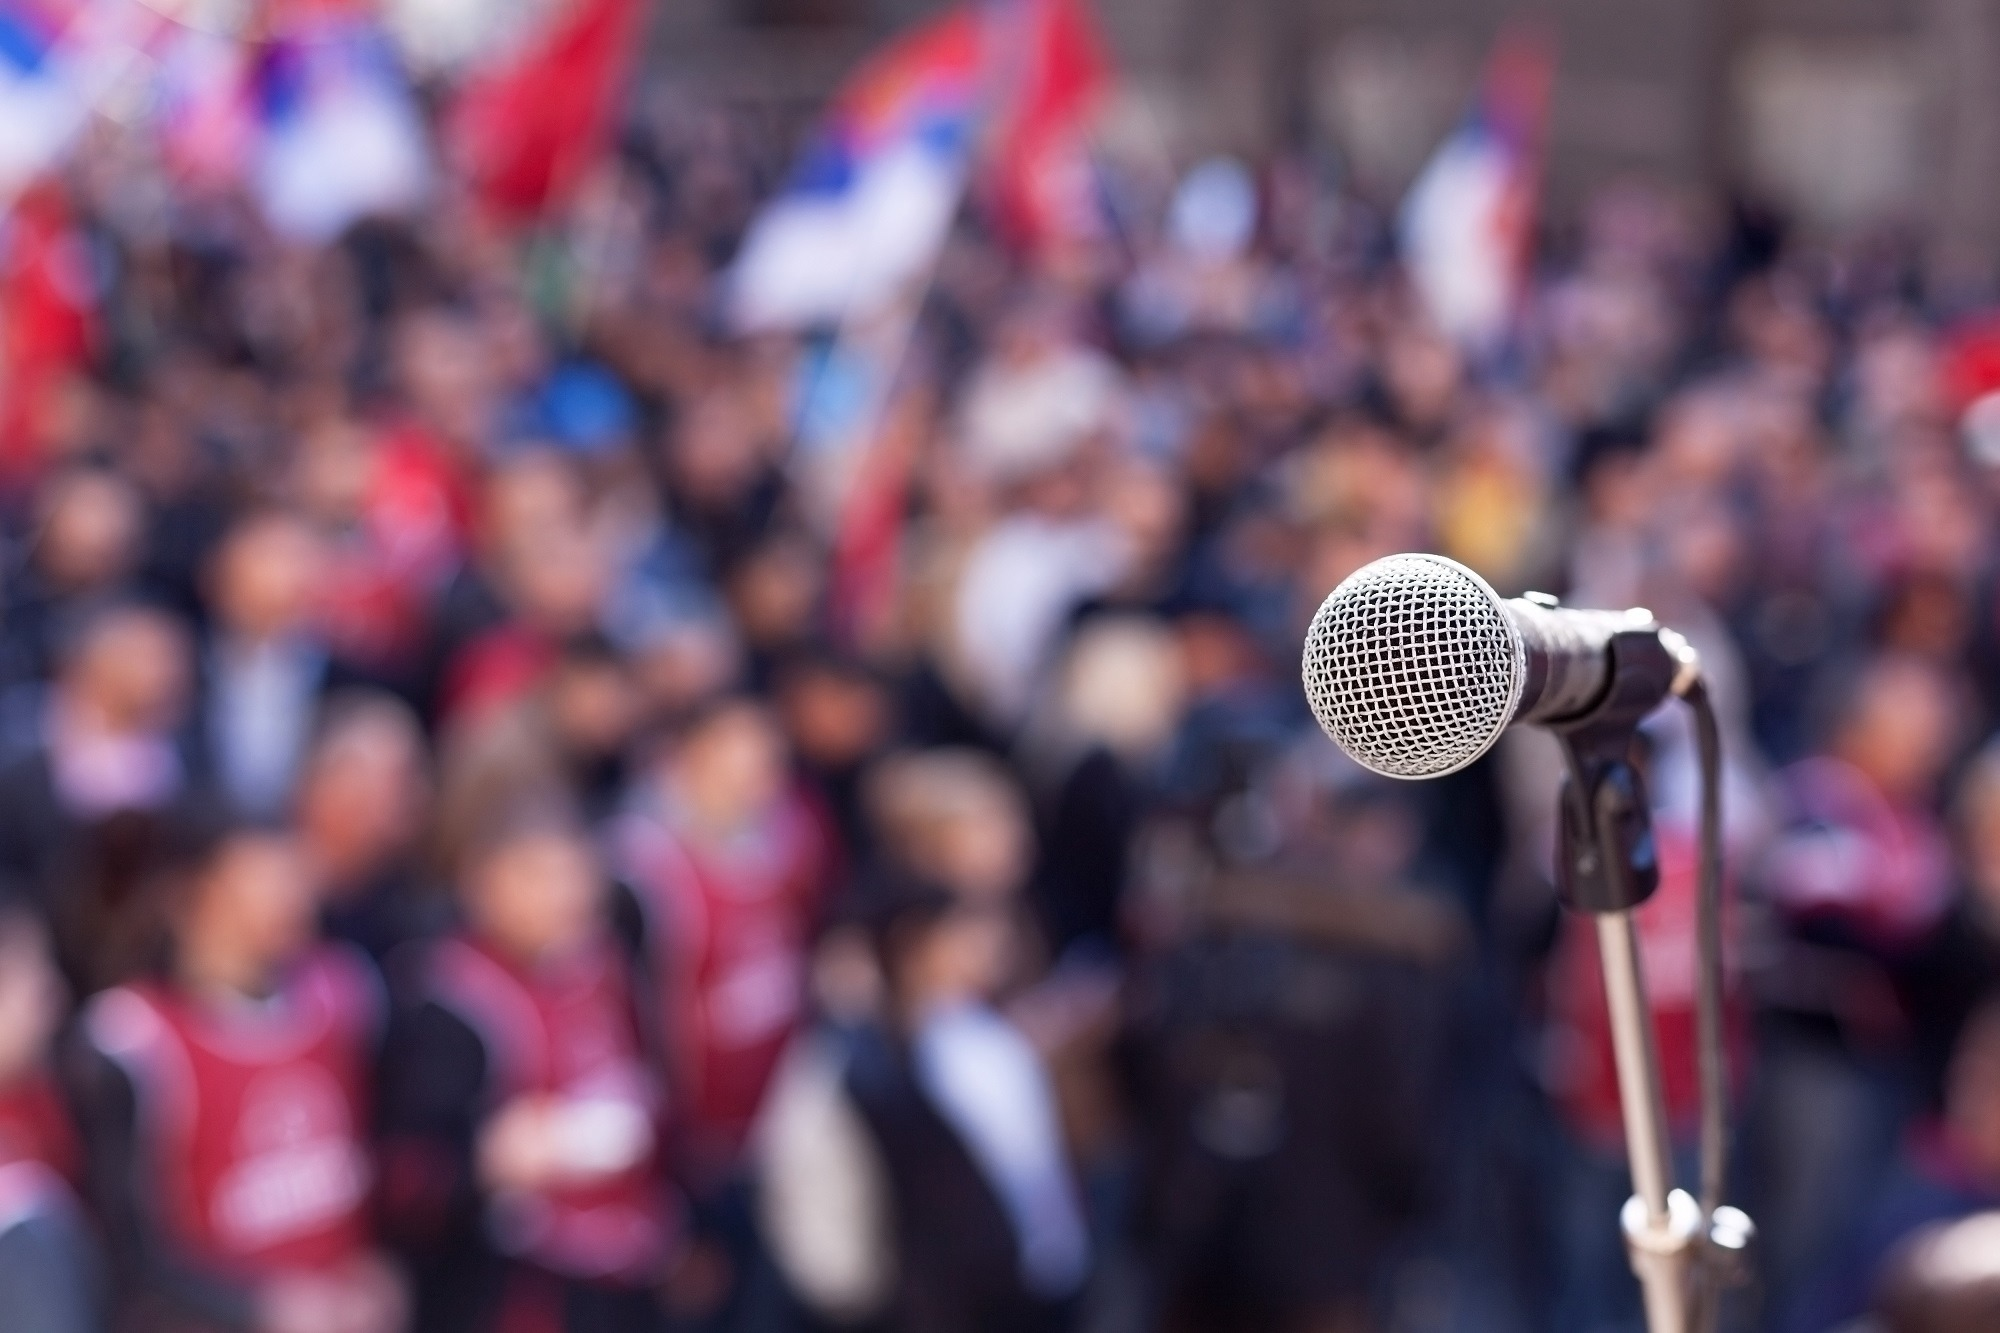 Microphone focused in front of a crowd